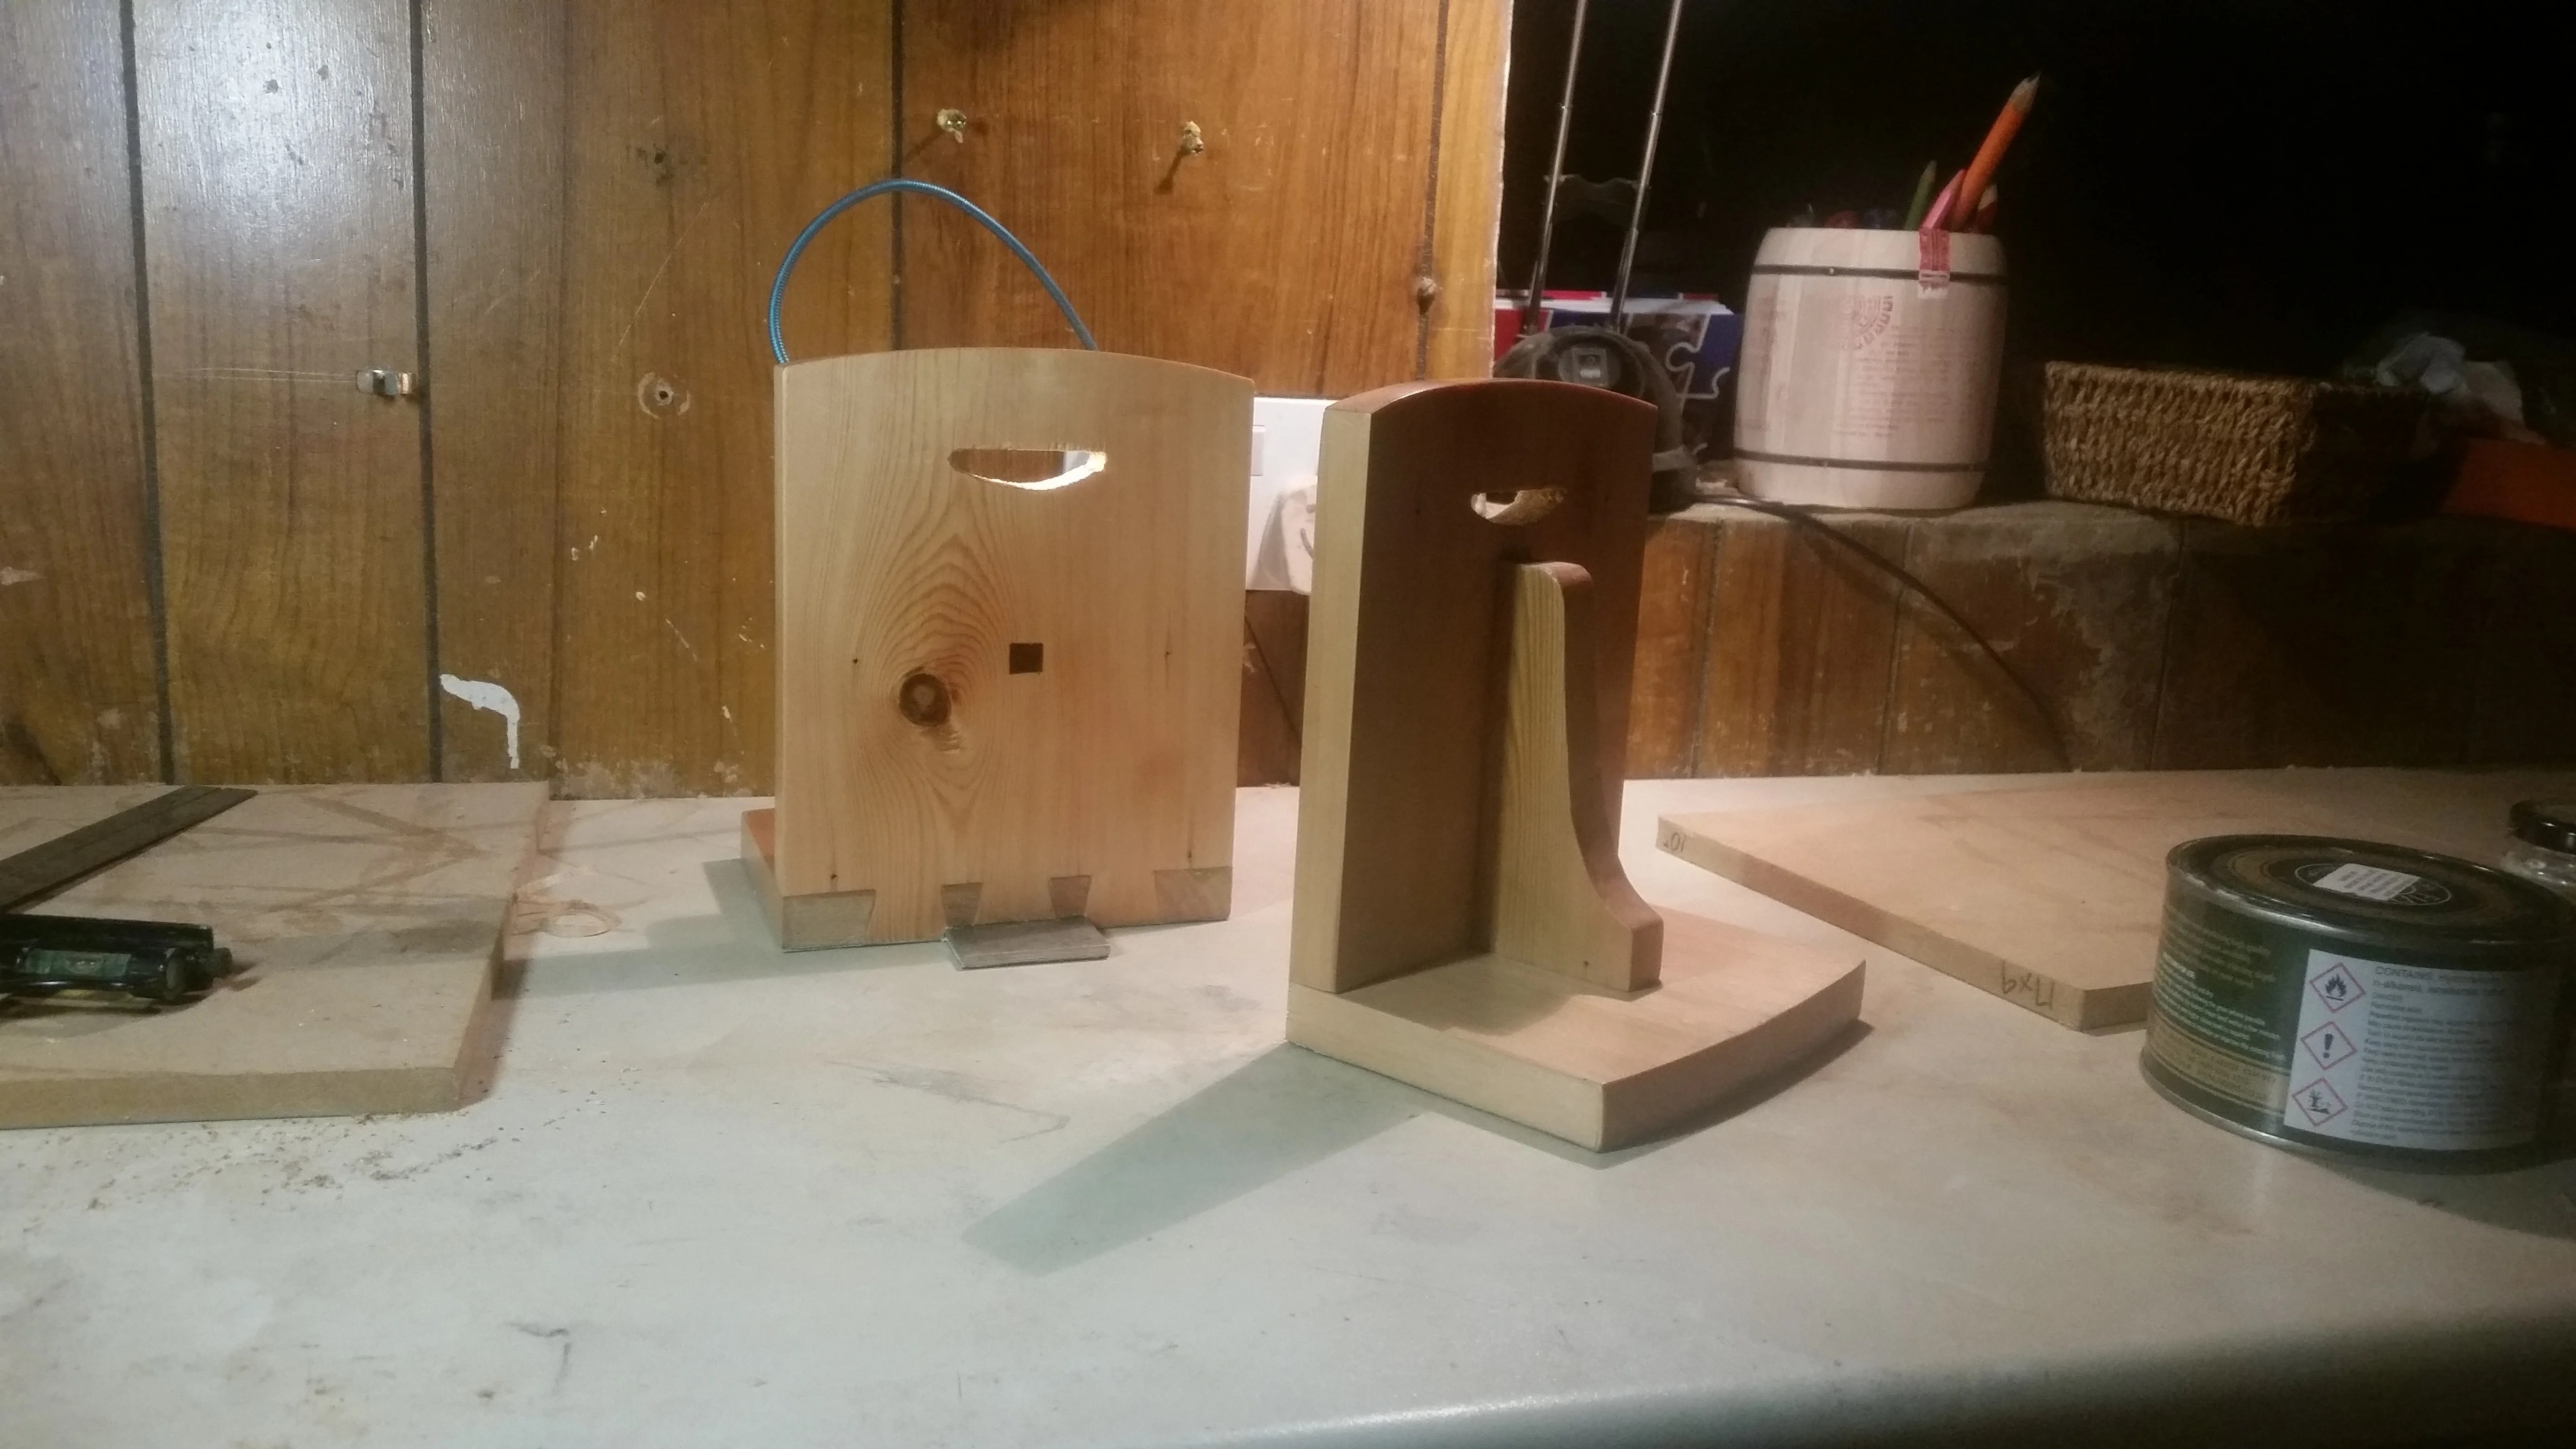 Bookends by Ged